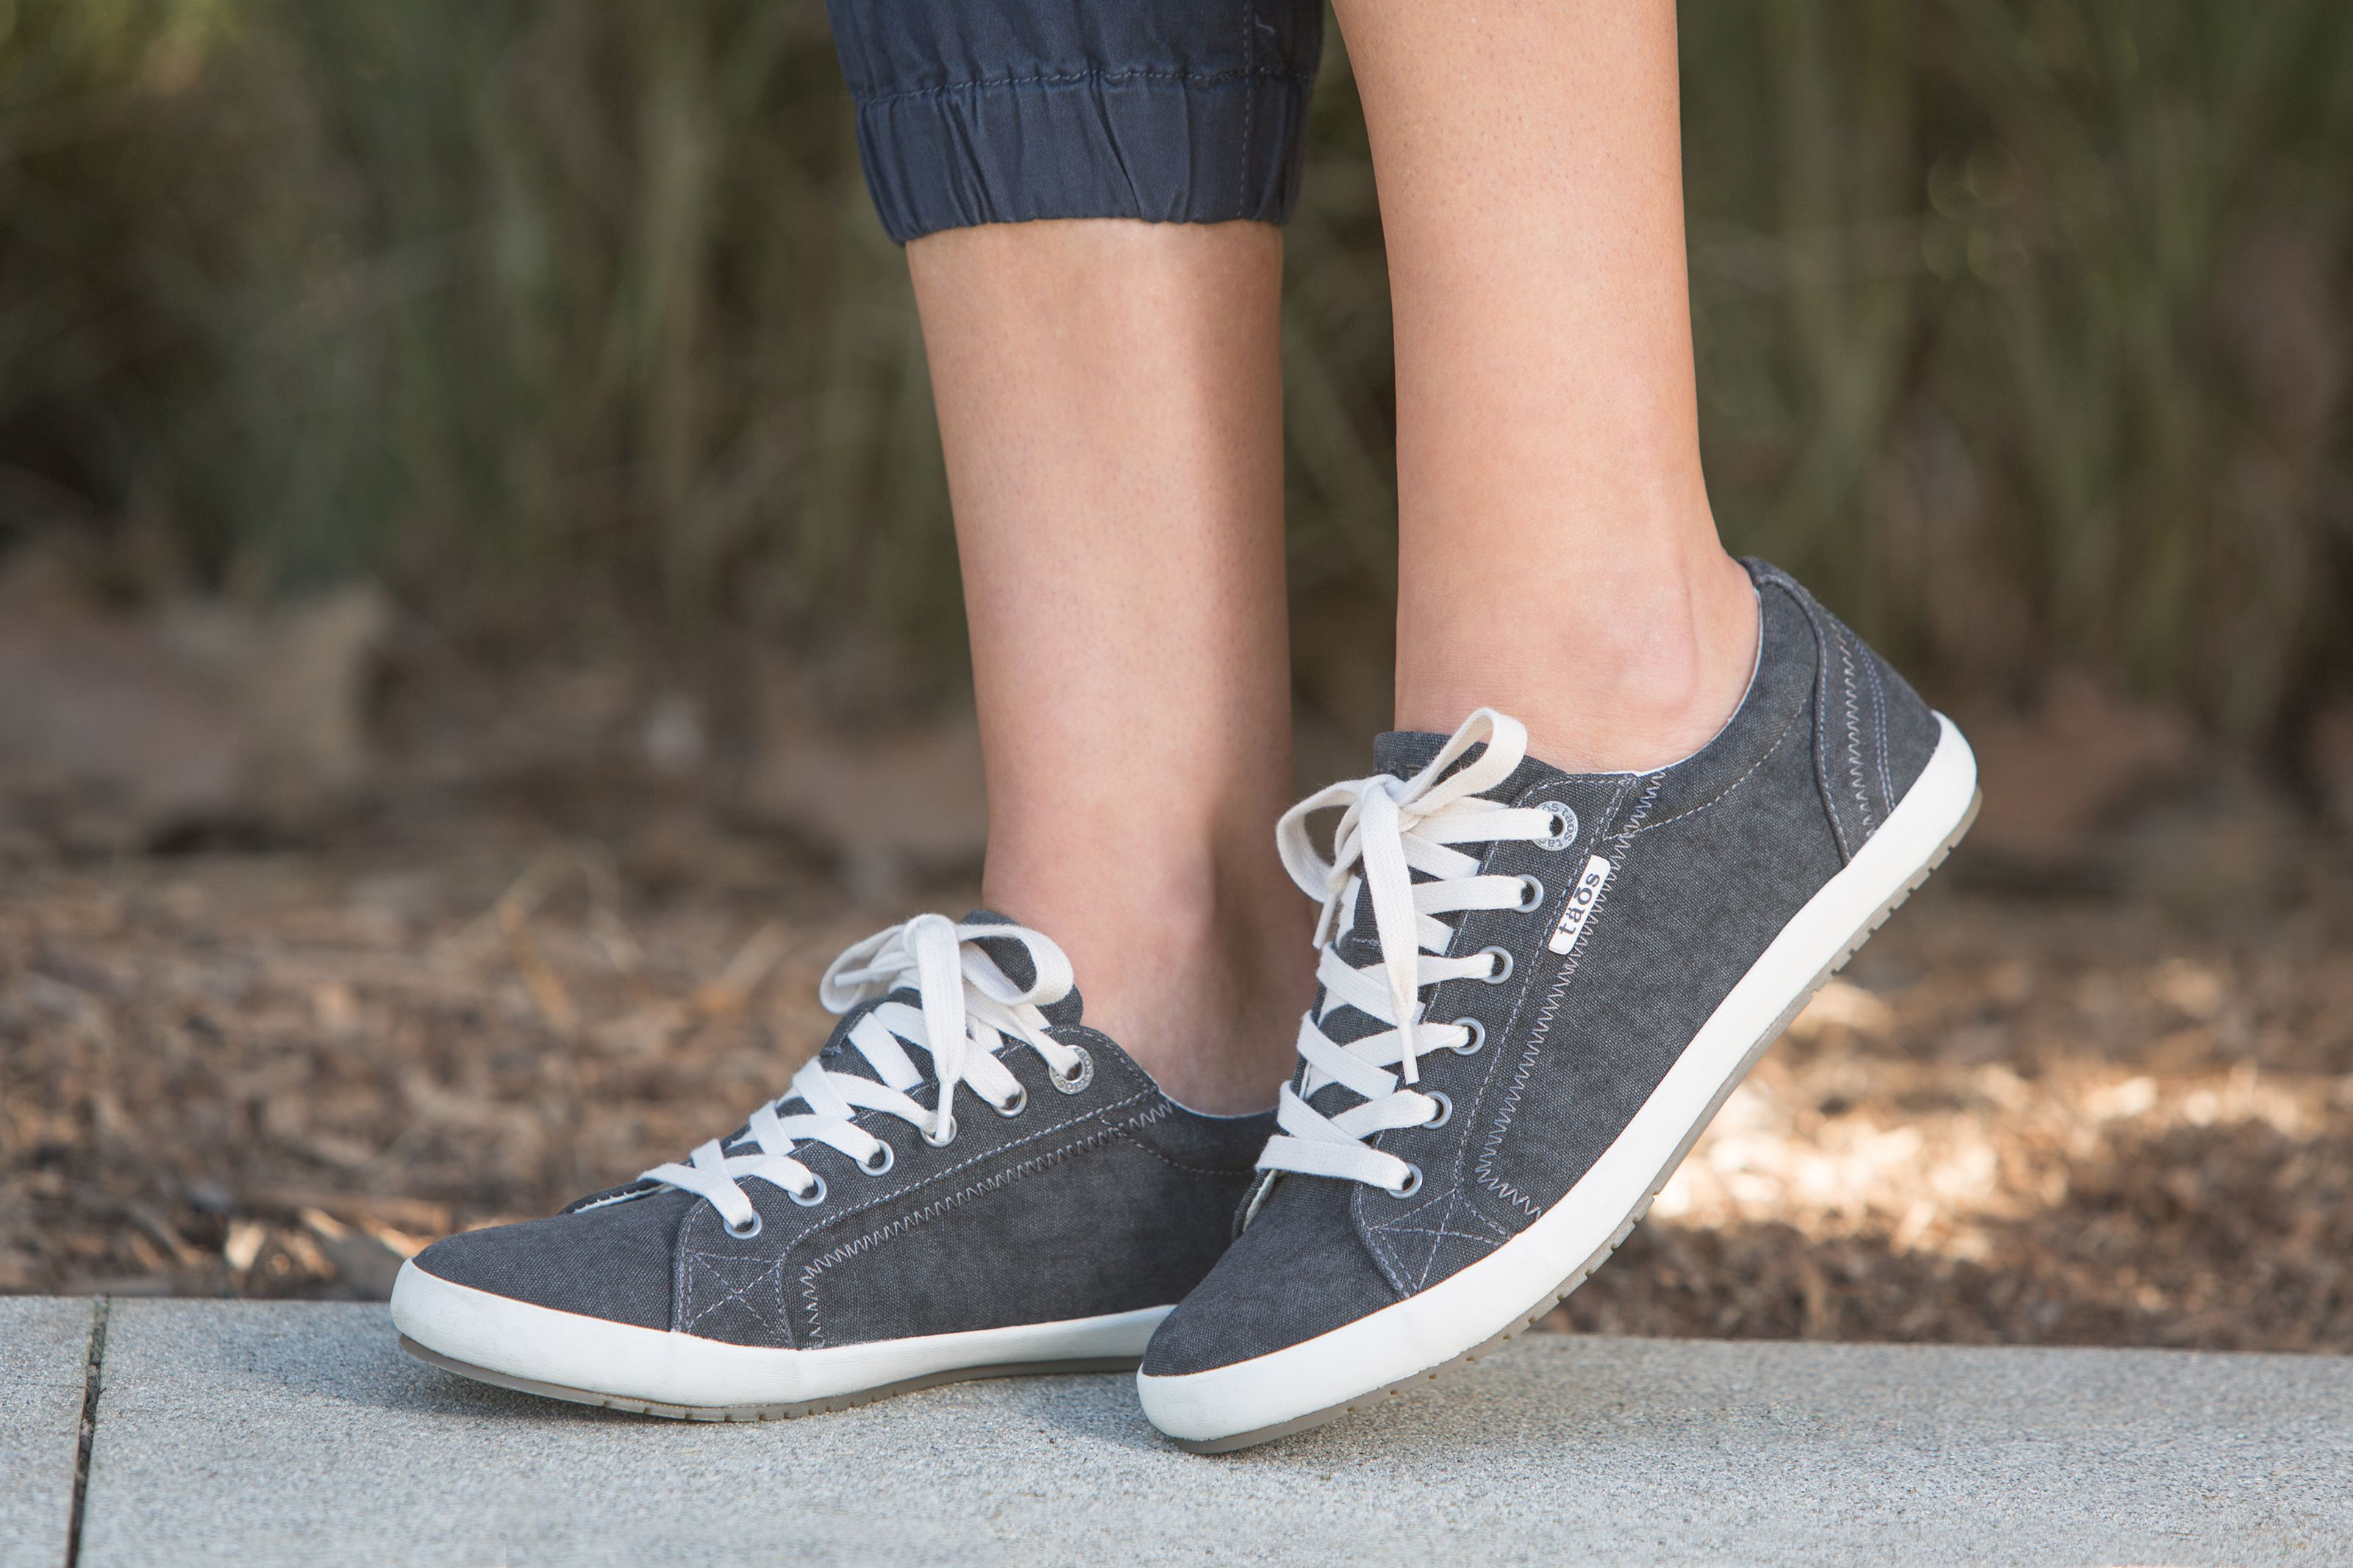 c43c6b9b84e36b Style and comfort for everything you do with the Taos Star Canvas Sneaker.  Available in 2 colors  Charcoal Wash Canvas and Khaki Wash Canvas.